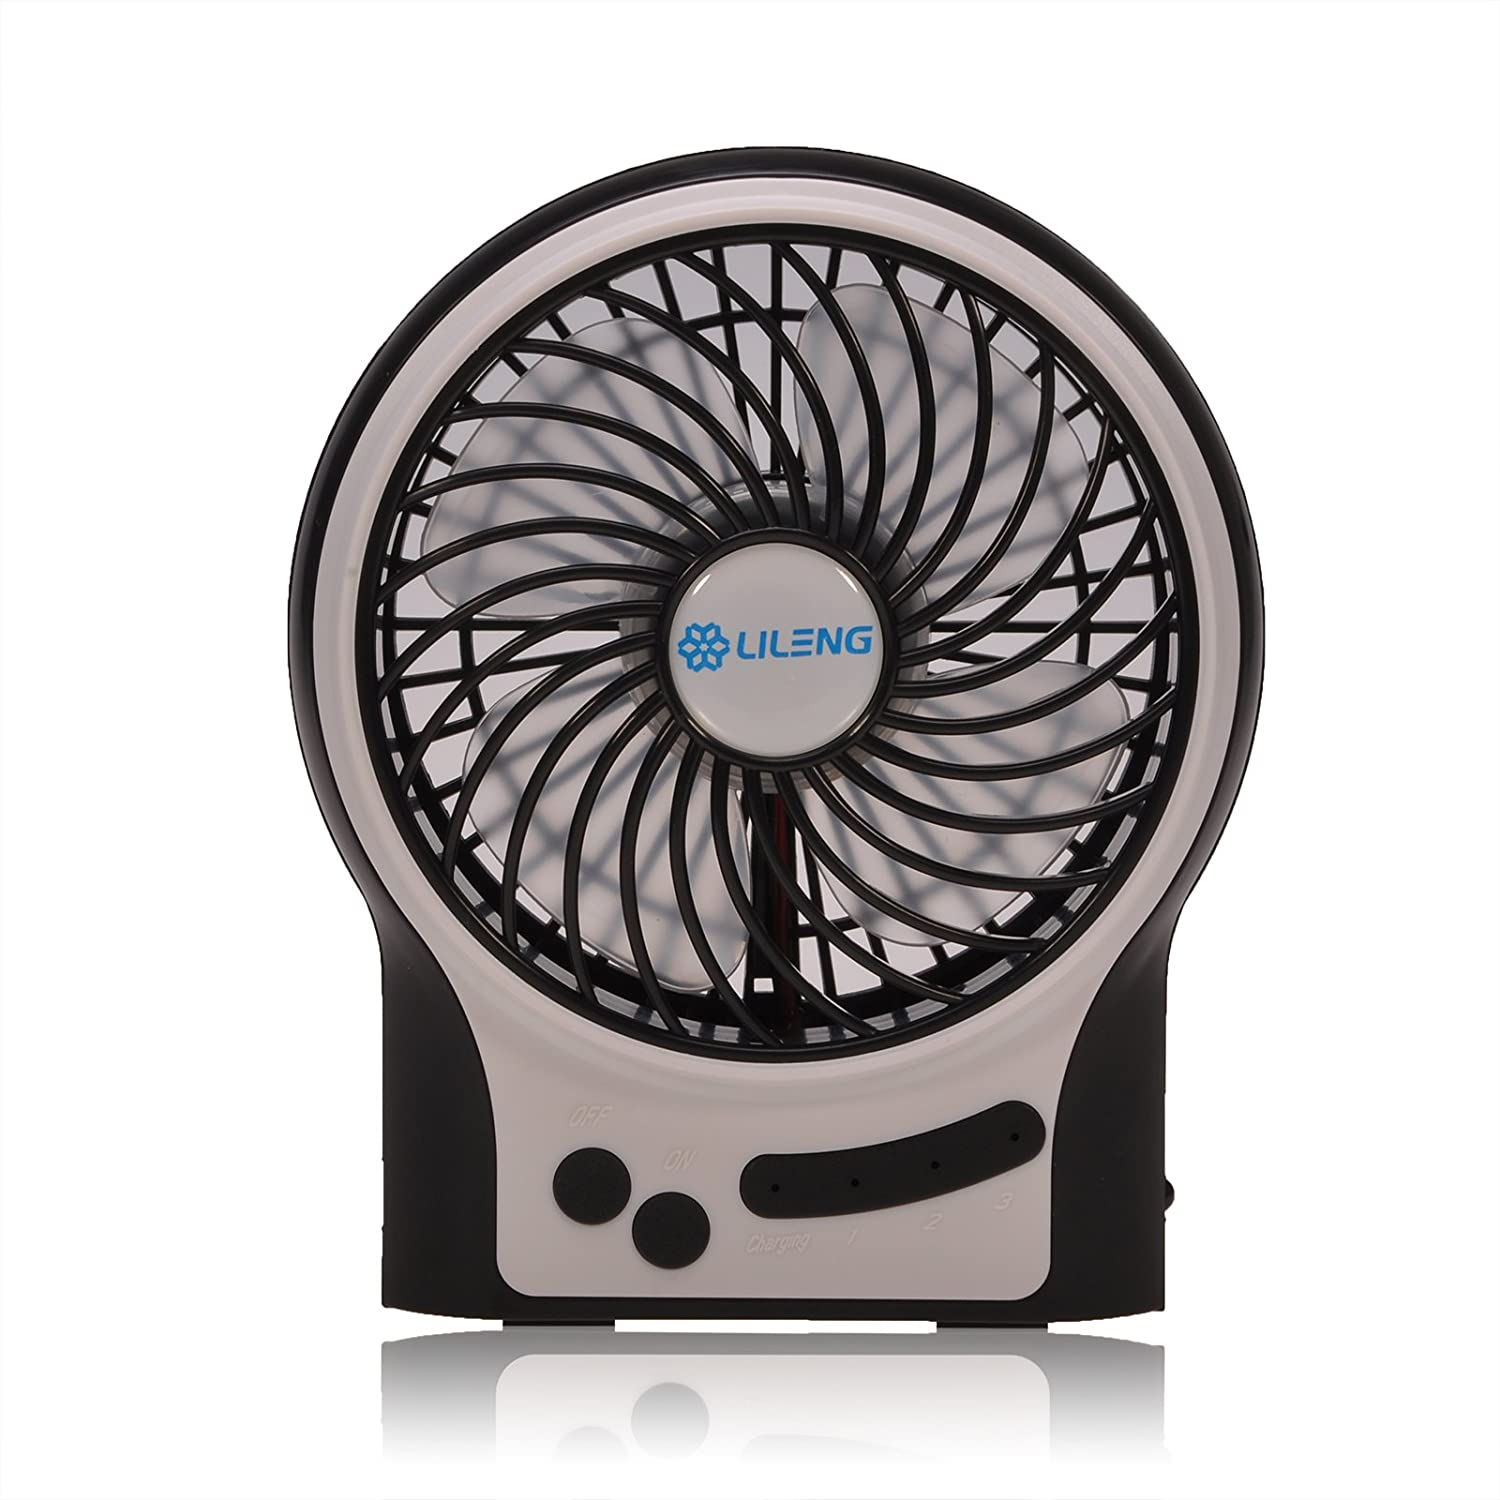 GIZGA Mini Portable USB Rechargeable 3 Speeds Personal Fan with LED Light, Built in 2200mAh 18650 Lithium-ion Battery for Home Office Outdoor Use – Black